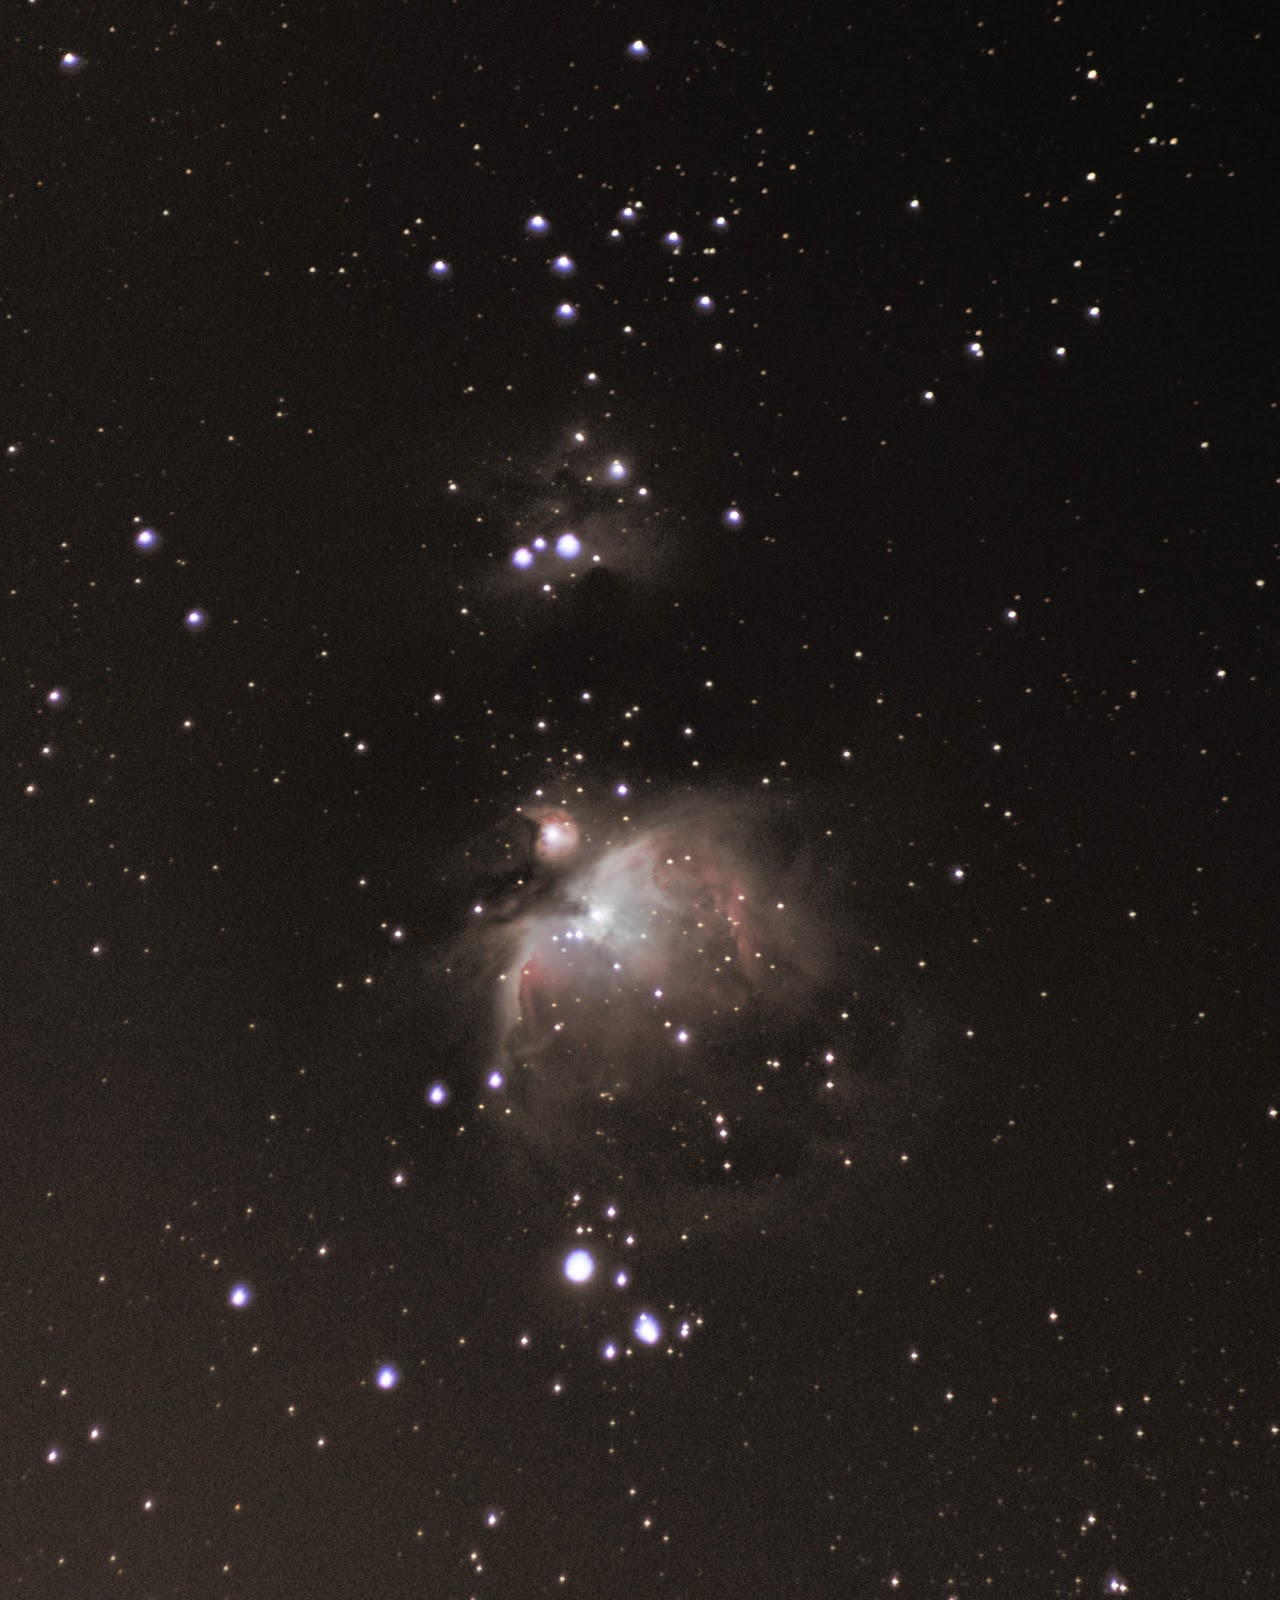 orion nebula m42 with canon t5i 300mm